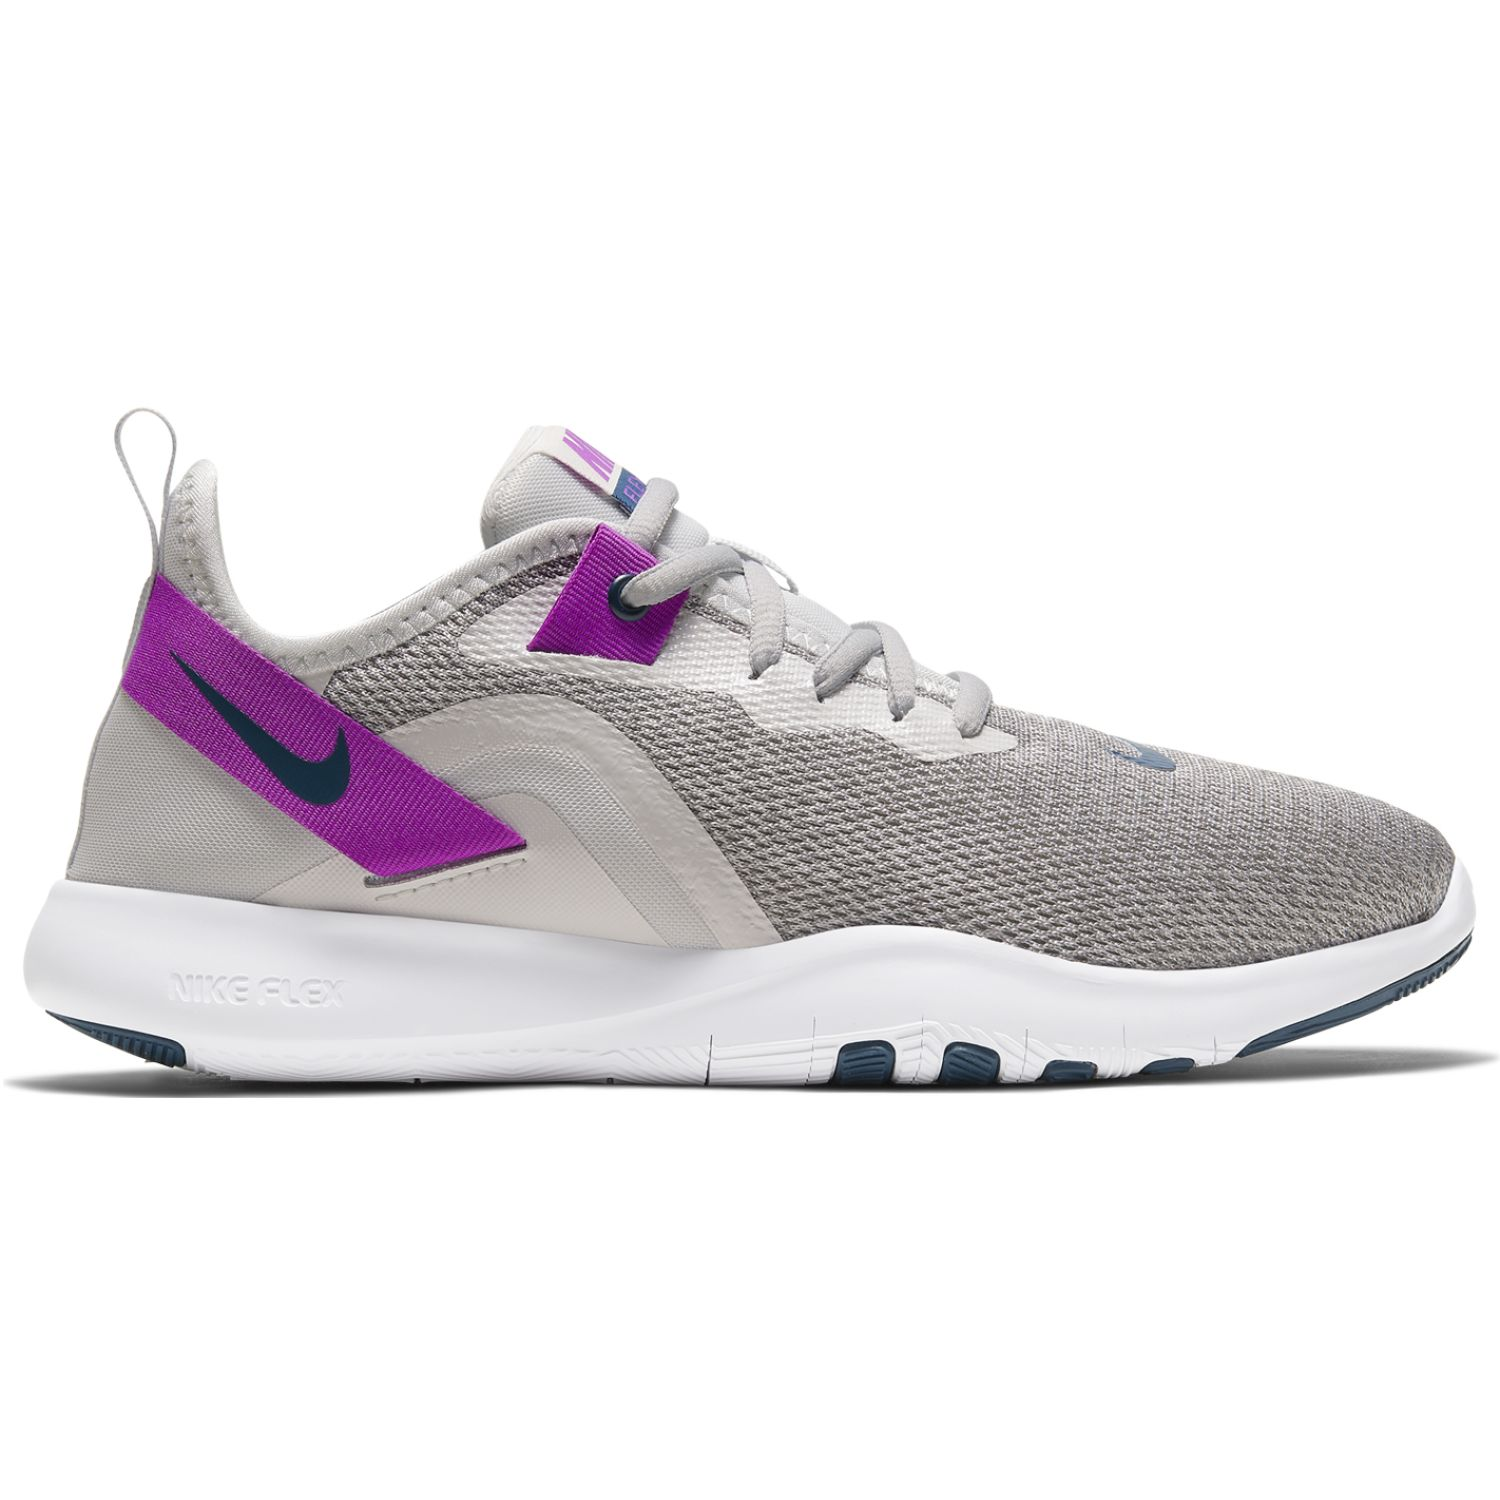 Nike Wmns Nike Flex Trainer 9 Gris Mujeres